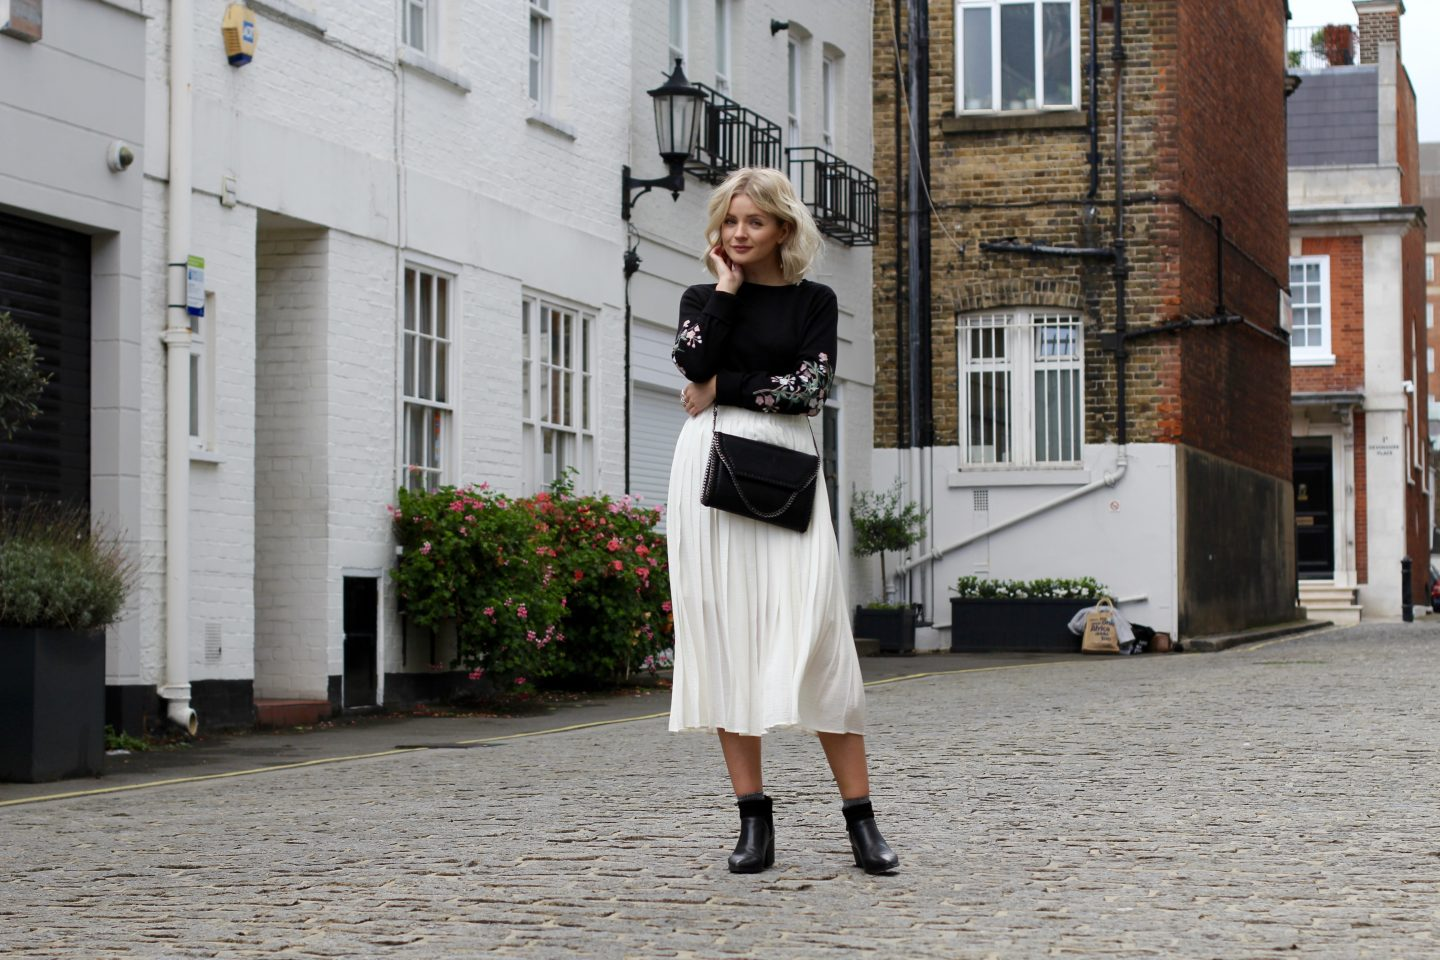 embroidery, embroidered, pleated skirt, blonde bob, wavy blonde hair, wavy blonde bob, cross body bag, ankle boots, glitter socks, how to wear a pleated skirt, fashion blogger, west london, london blogger, lauras little locket, laura byrnes